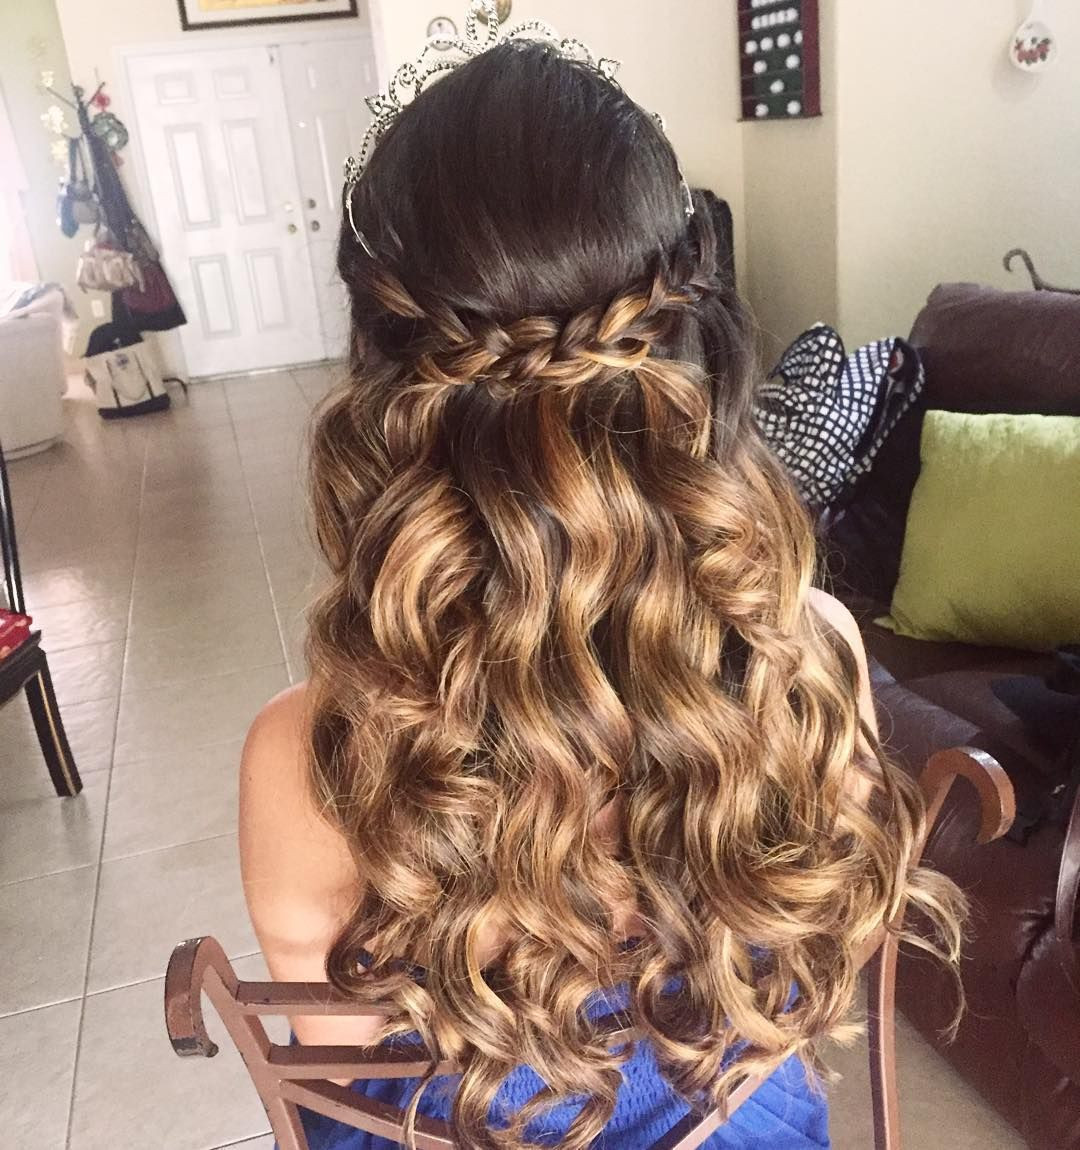 Best ideas about Cute Hairstyles For Quinceaneras . Save or Pin 20 Absolutely Stunning Quinceanera Hairstyles with Crown Now.